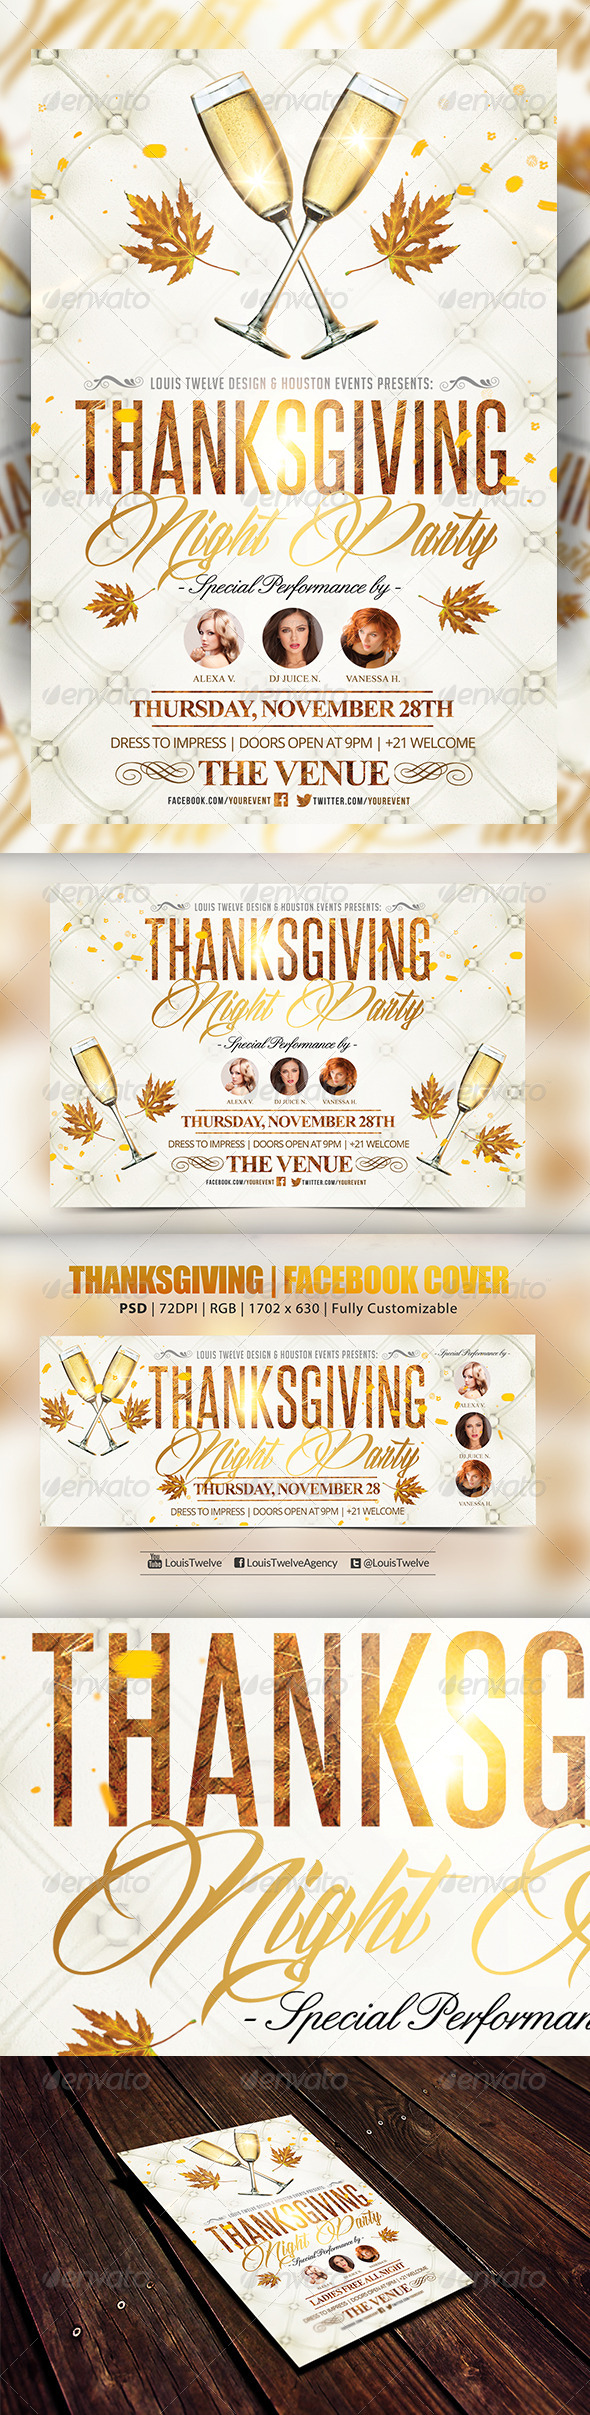 Thanksgiving Night Vertical Horizontal & FB Cover